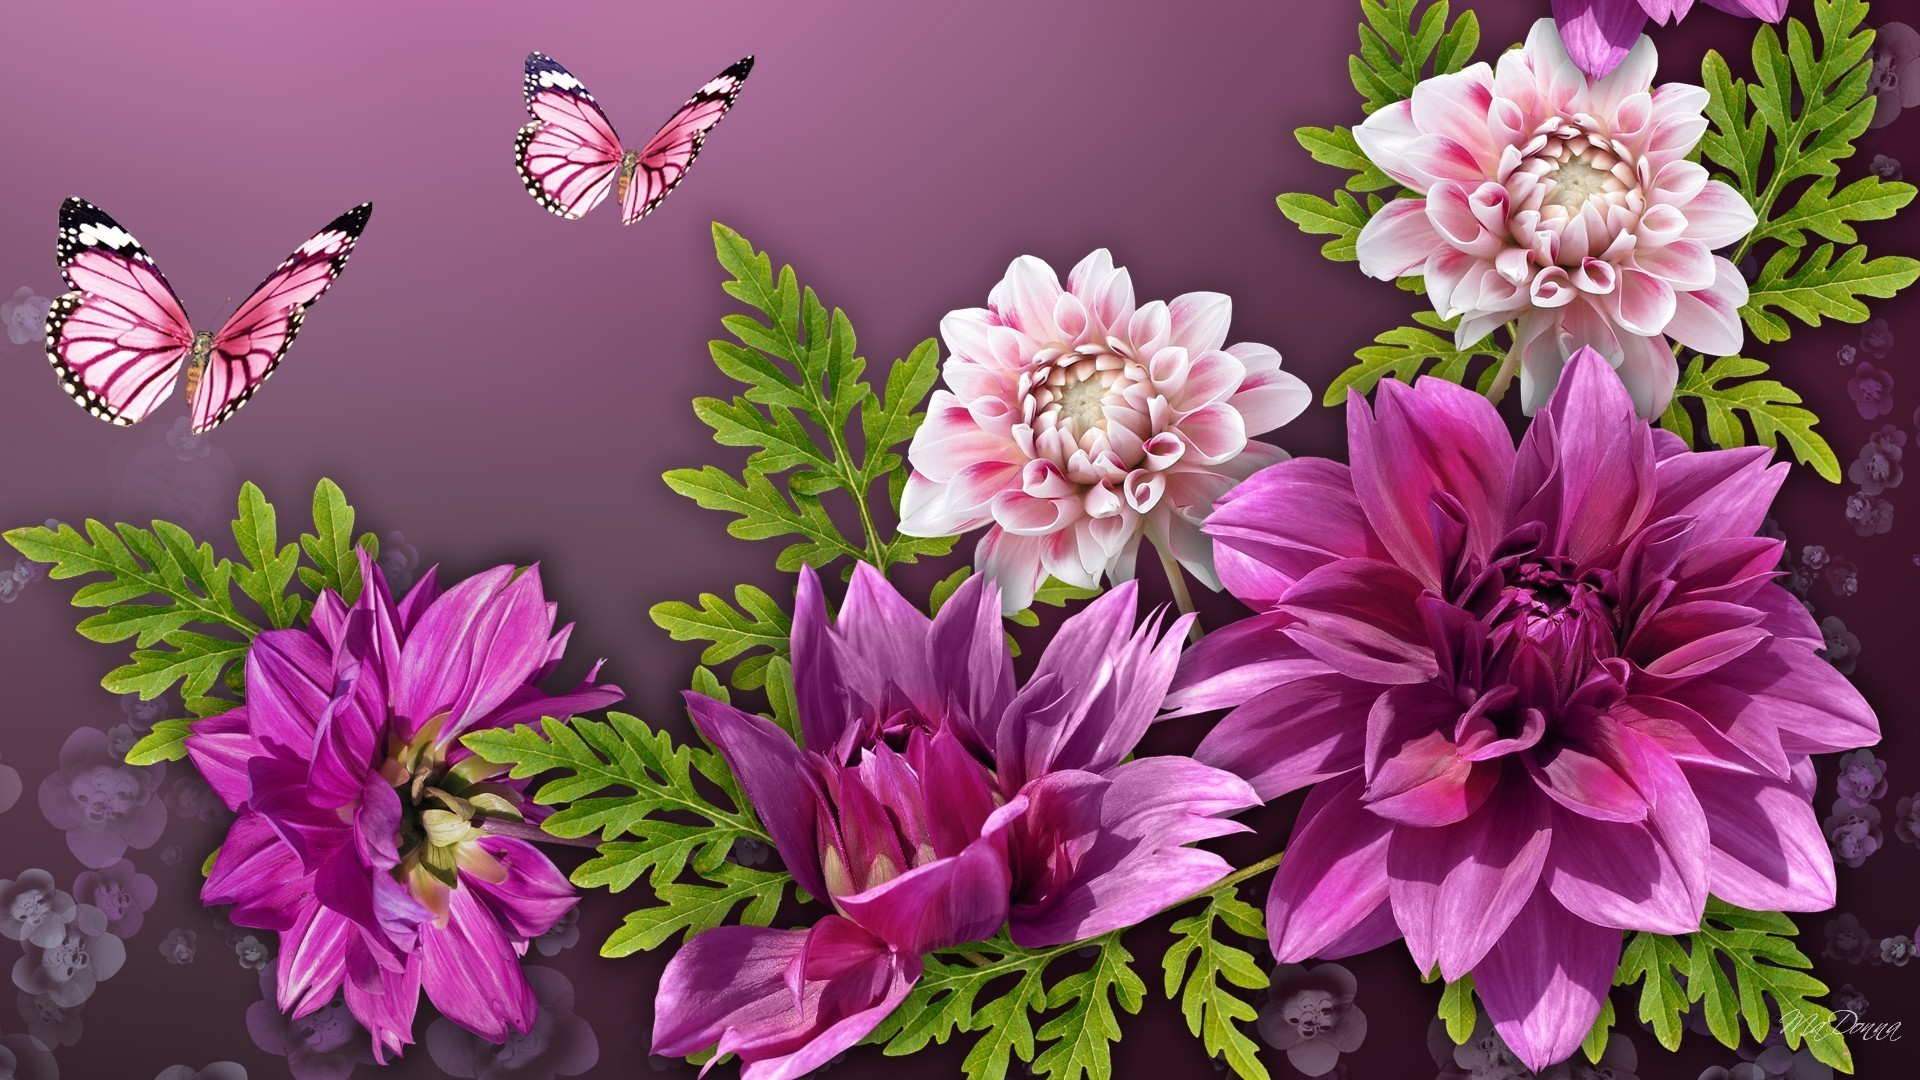 Jasmine Flower Wallpaper Pictures Wallpaper Flowerhdwallpaper - Pink Water Color Floral Butterfly , HD Wallpaper & Backgrounds